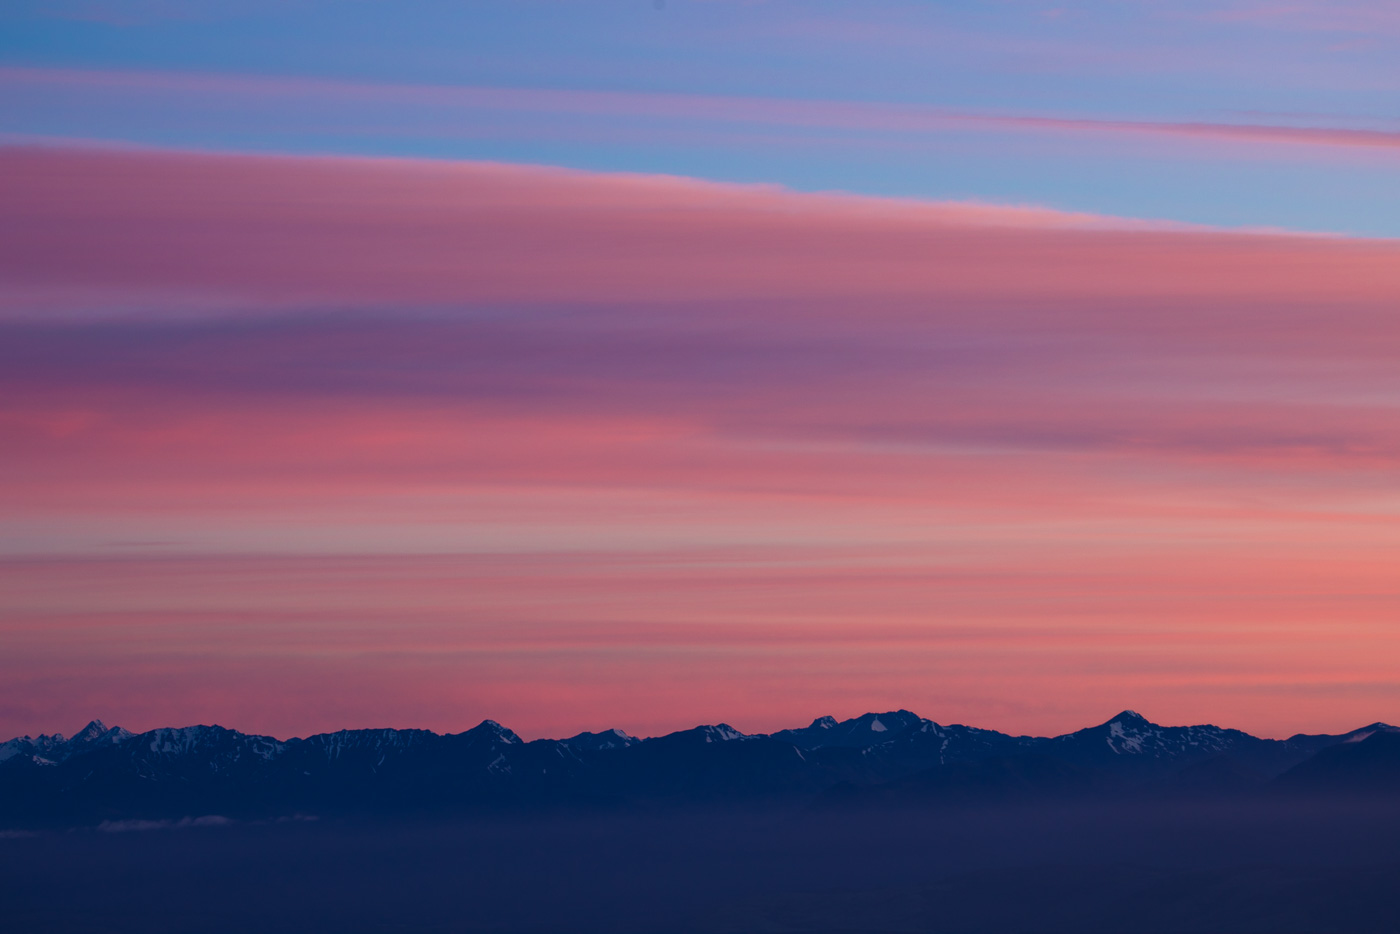 Mountain ranges at dawn from Mount Luxmore